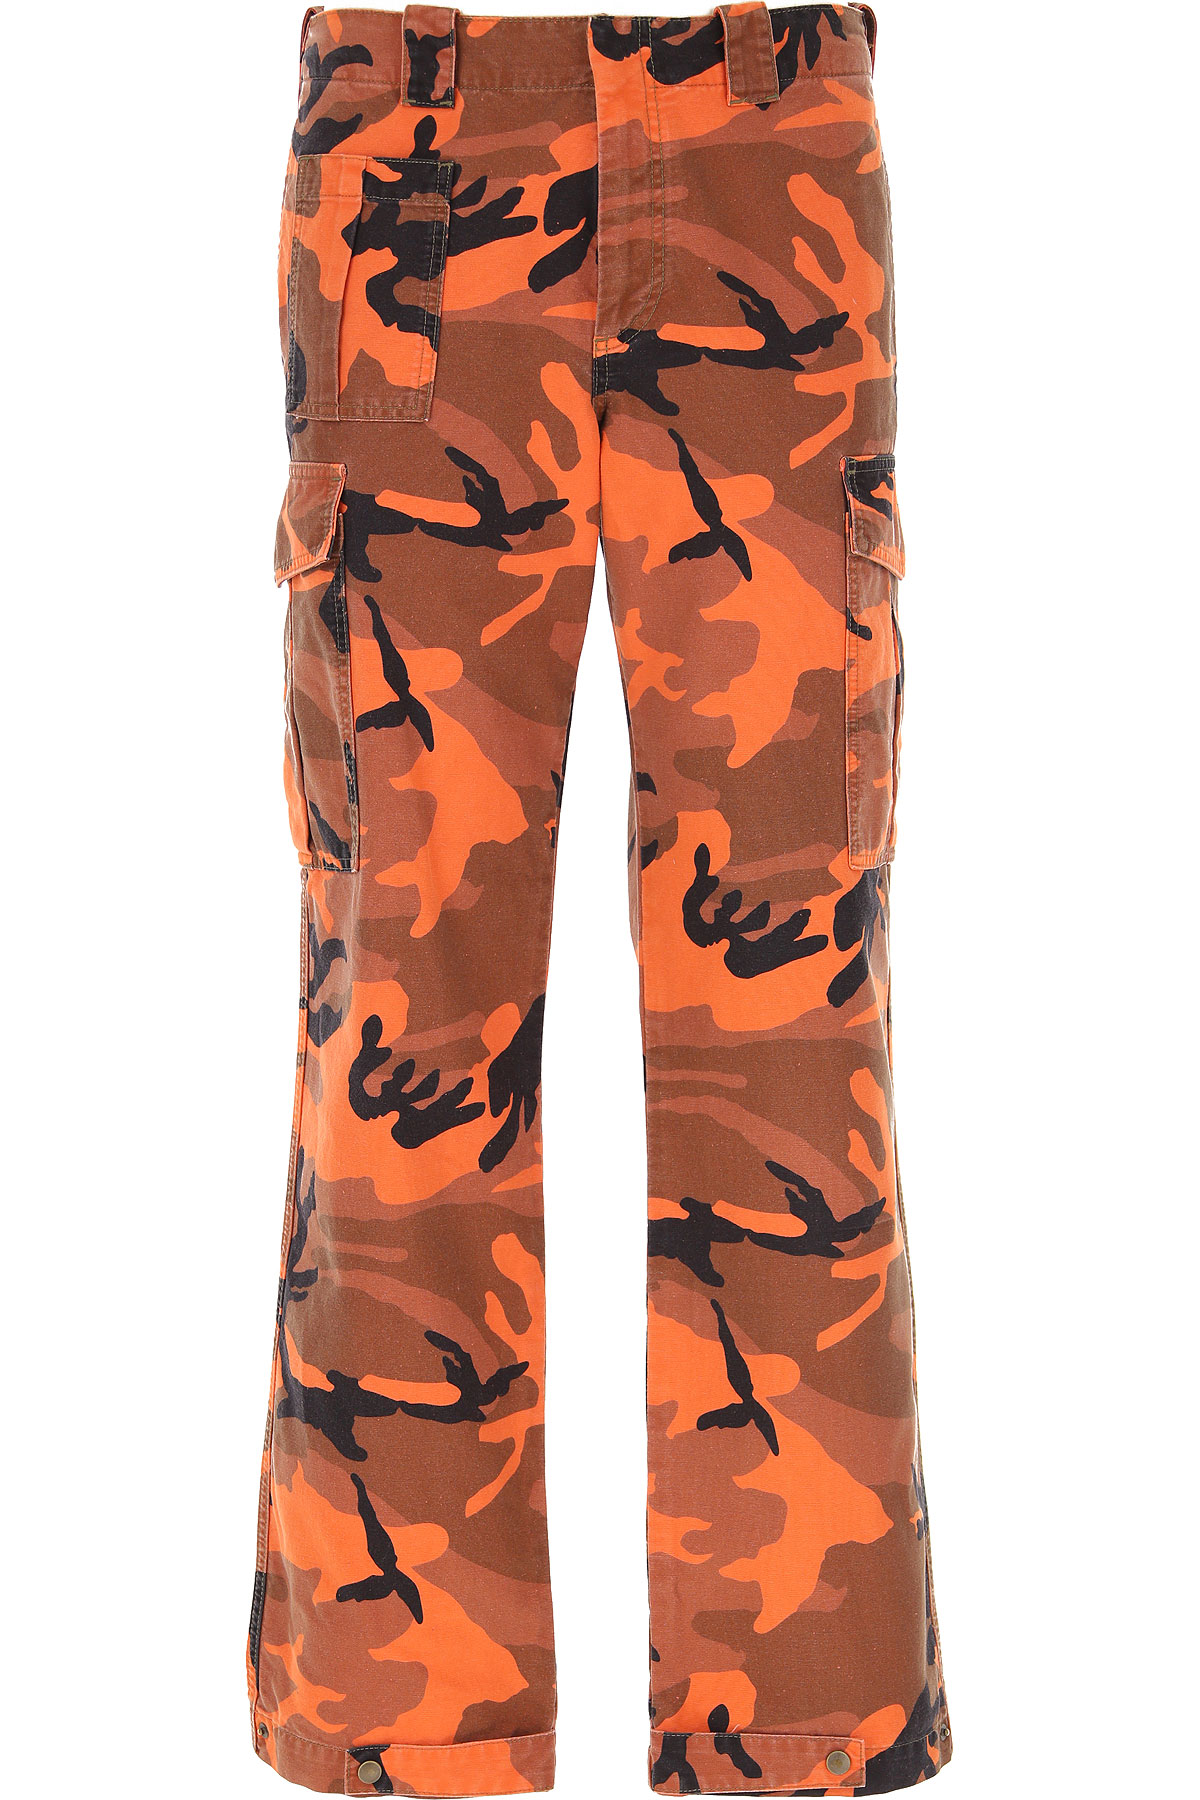 Alexander McQueen McQ Jeans On Sale, camouflage, Cotton, 2019, 30 32 34 36